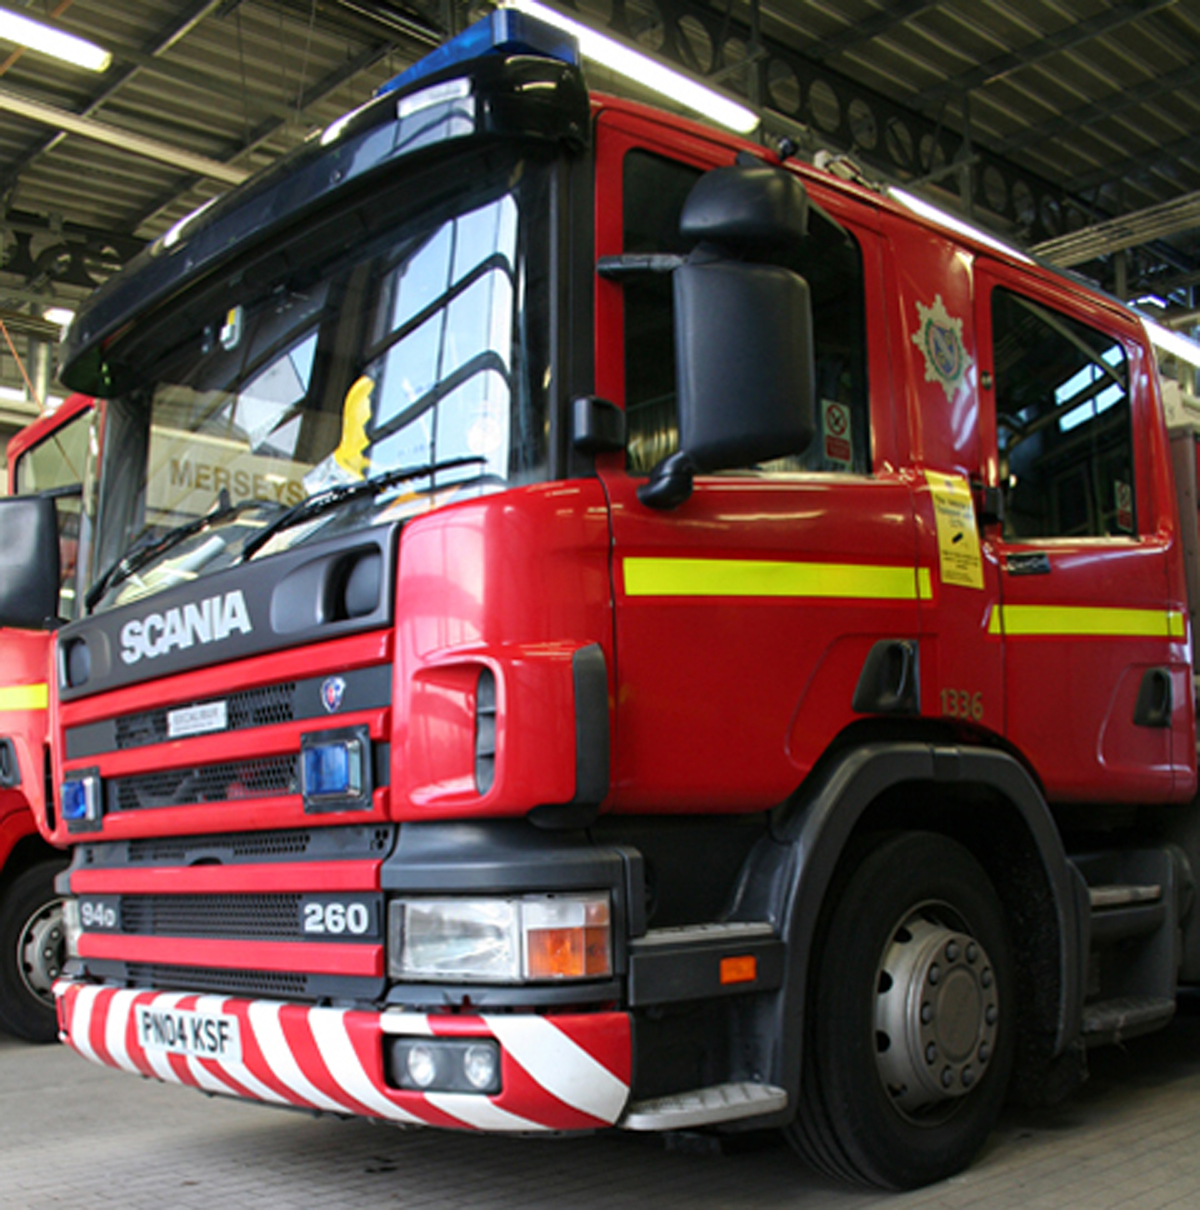 Fears over fire service cuts